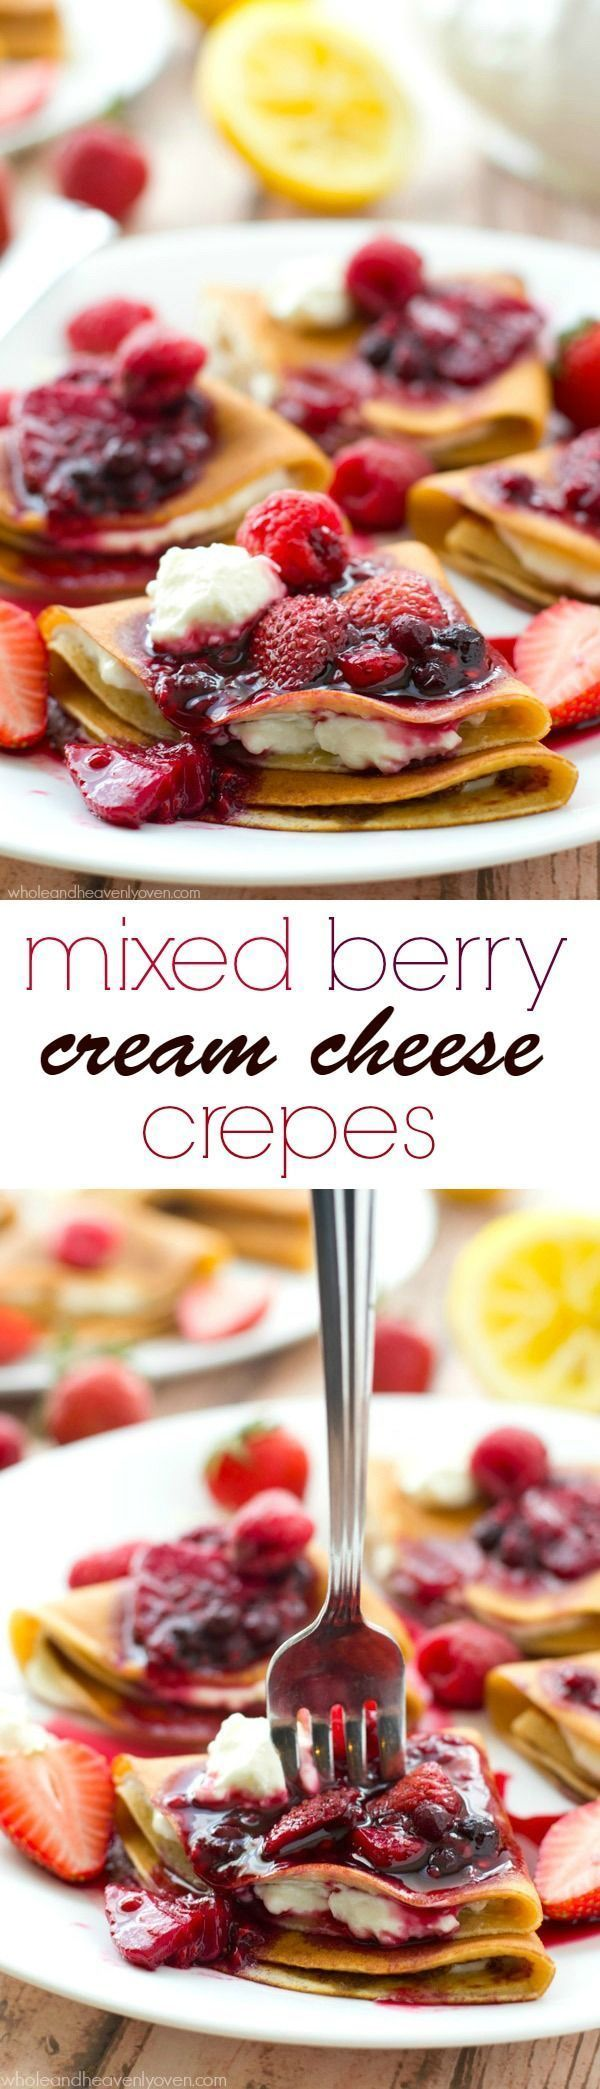 Filled with a tangy lemon cream cheese and topped with an unbelievable triple-berry sauce, these stunning crepes are a dream for any spring brunch!